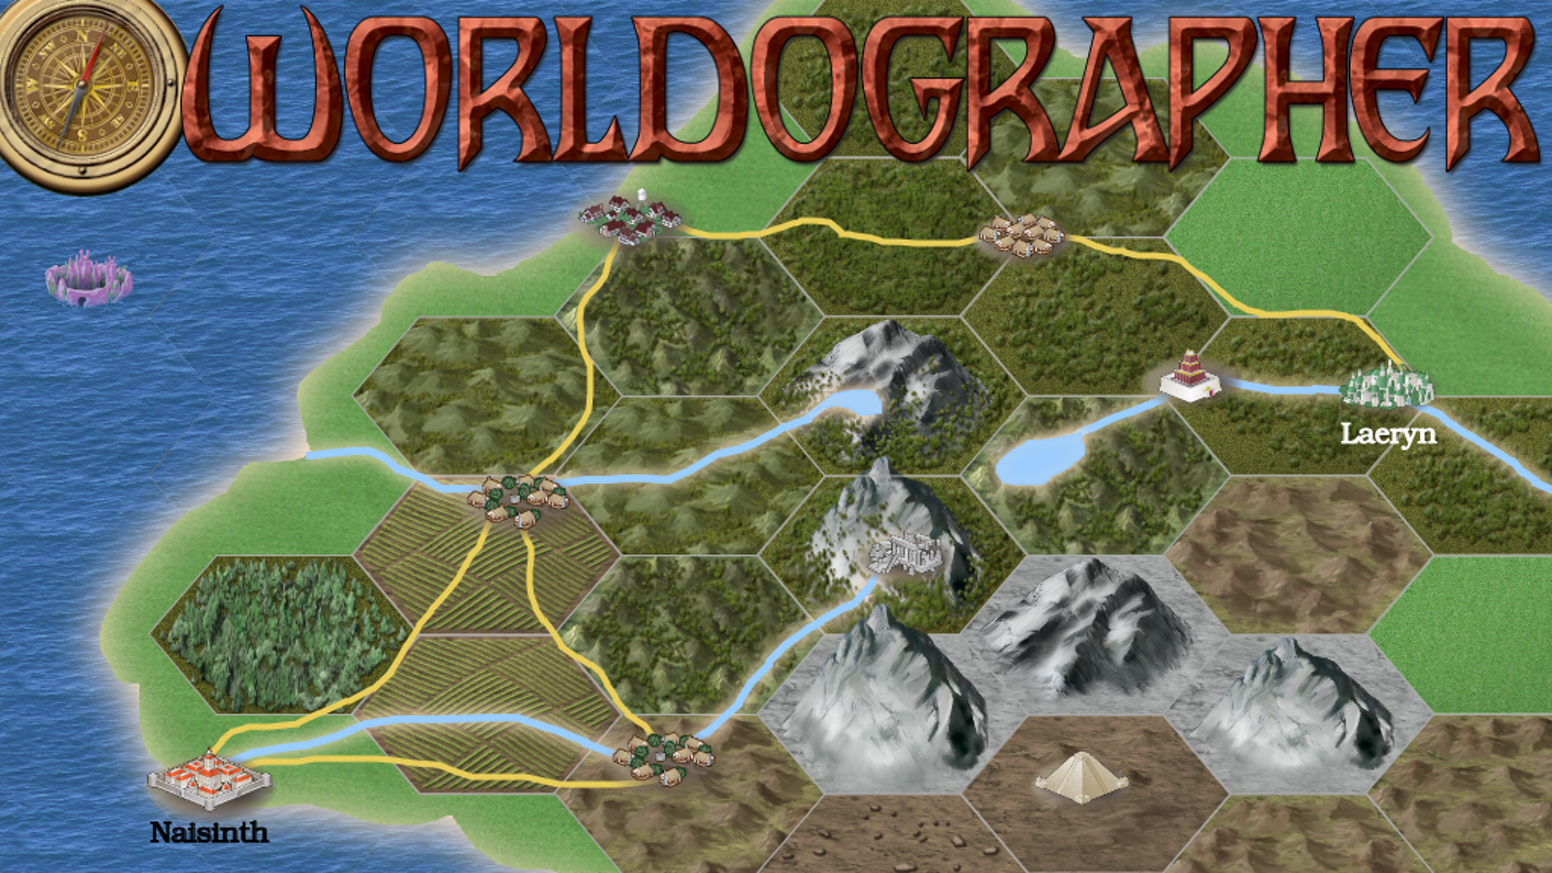 Map Creator.Worldographer Hexographer 2 Easy Map World Creator By Inkwell